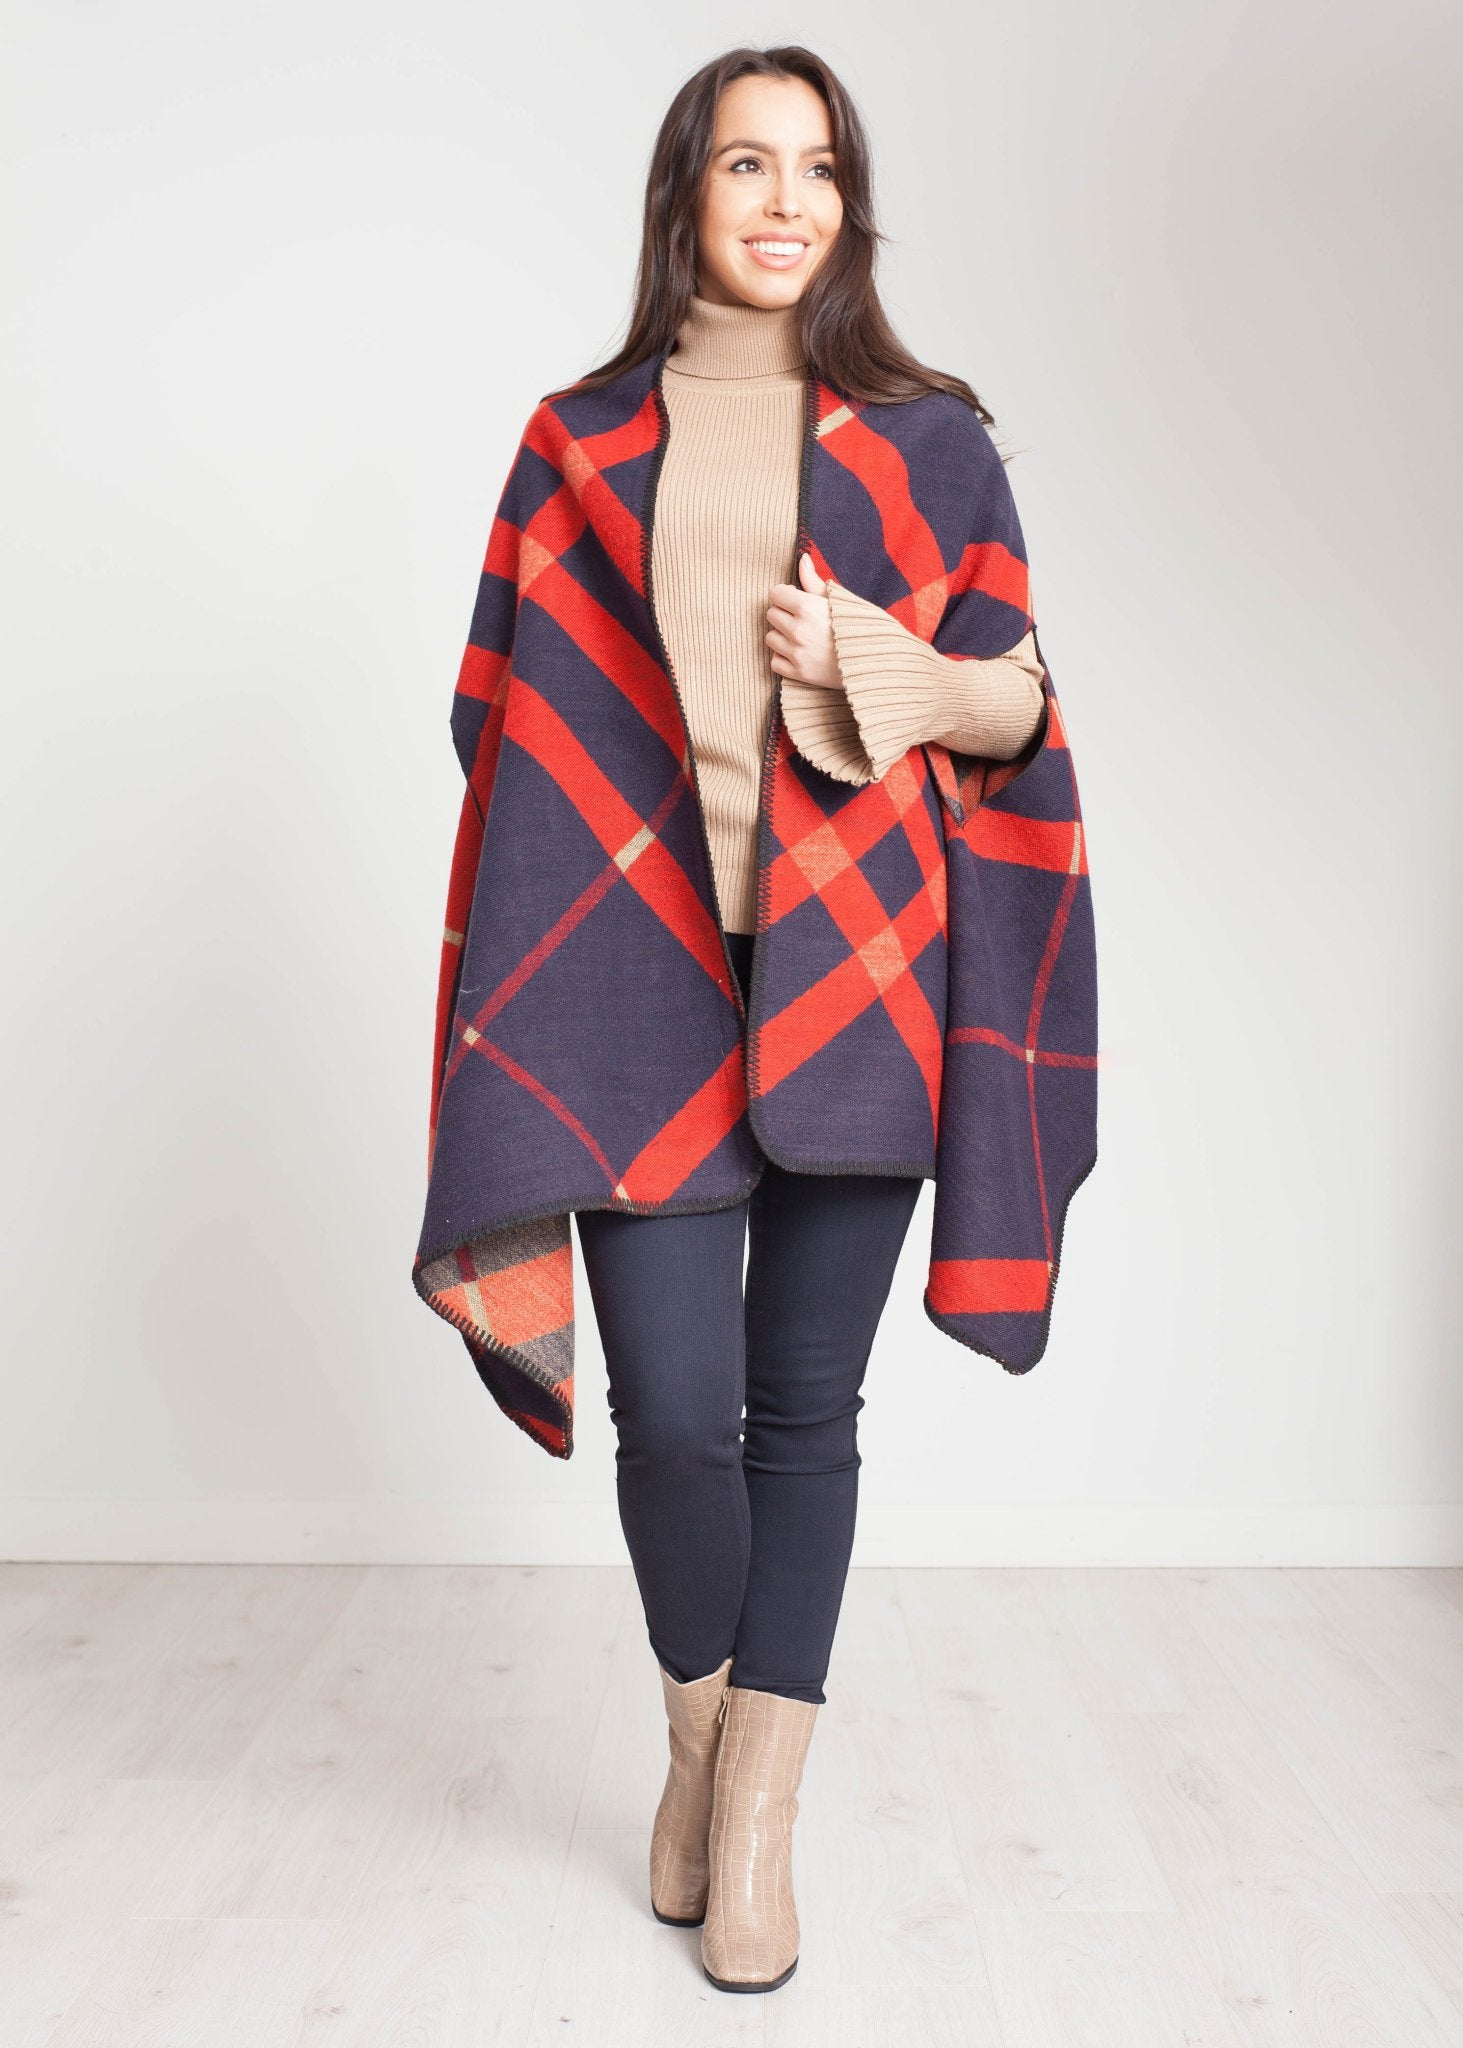 Carly Cape Style Scarf In Navy And Red - The Walk in Wardrobe